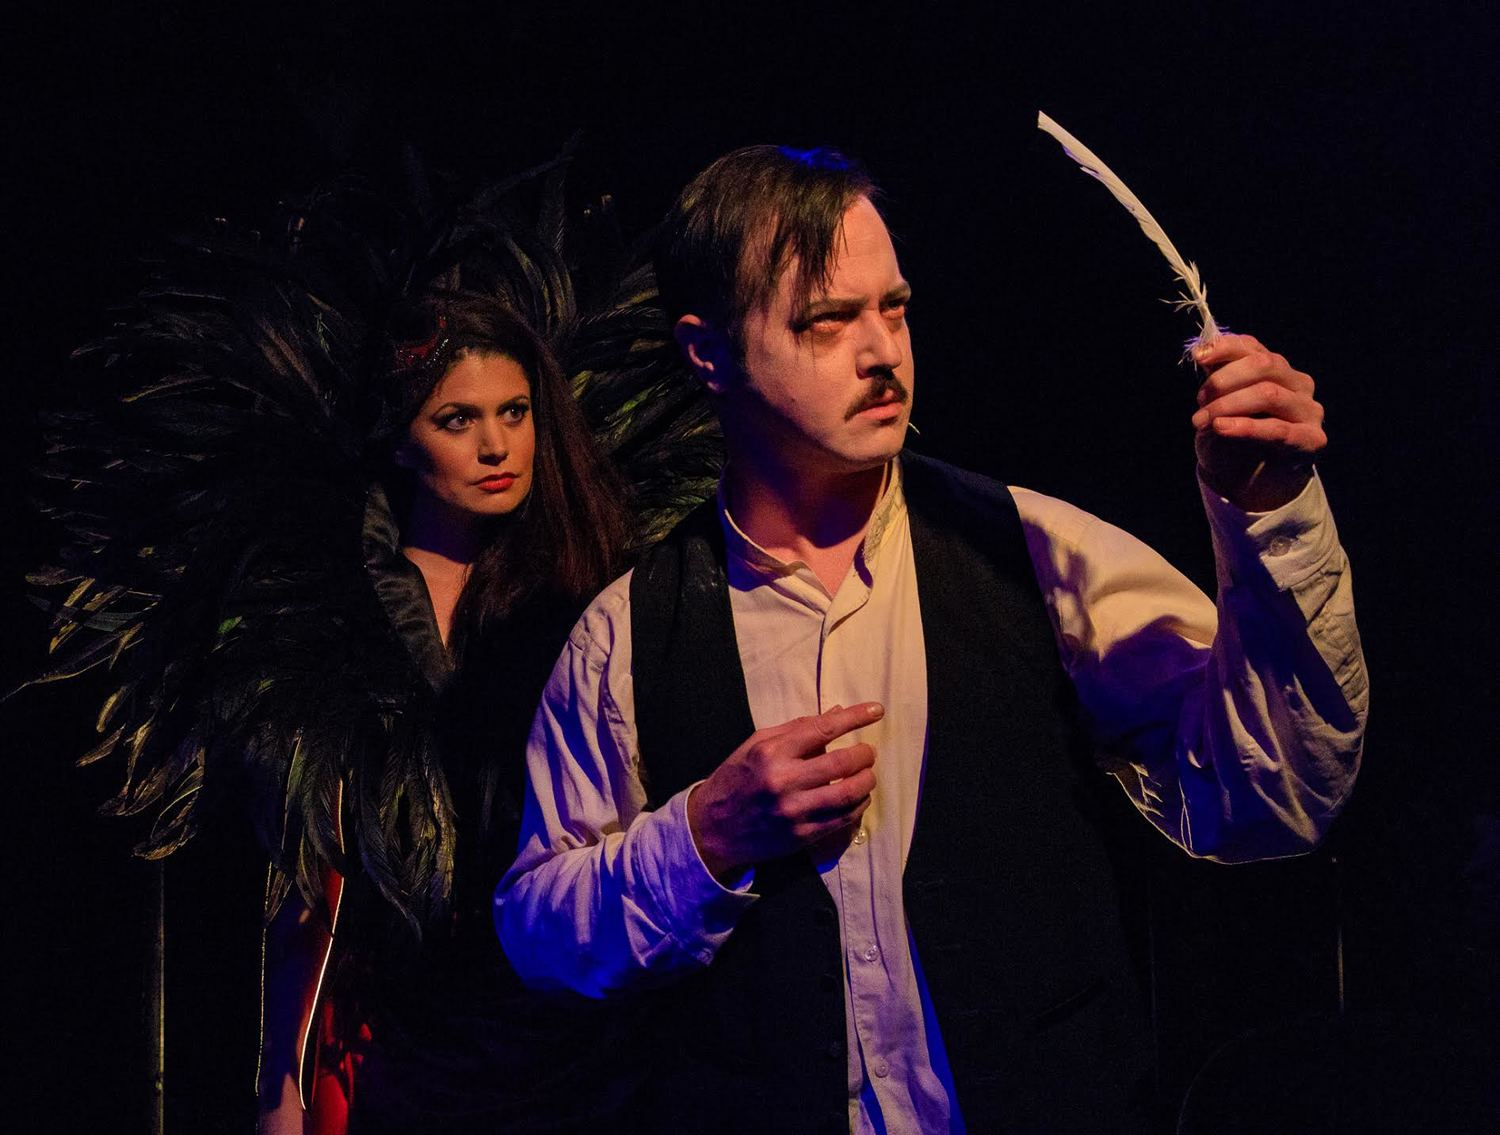 BWW Review: Chilling Edgar Allan Poe Musical NEVERMORE Returns to Creative Cauldron for October